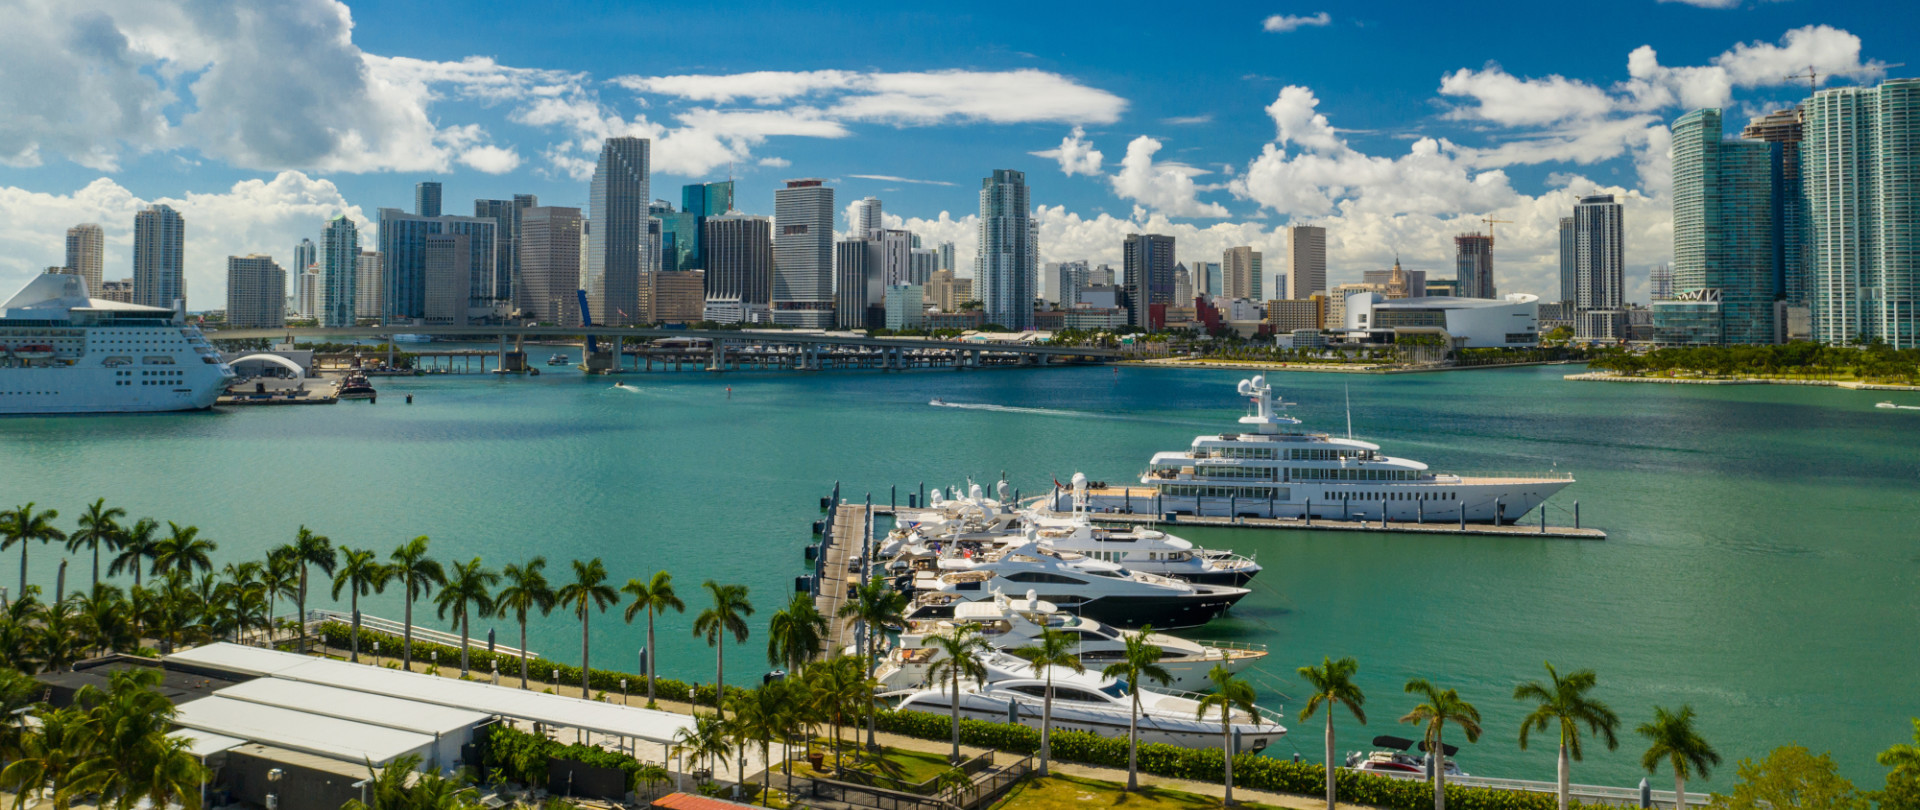 The Miami Yacht Show 2020 photo 1